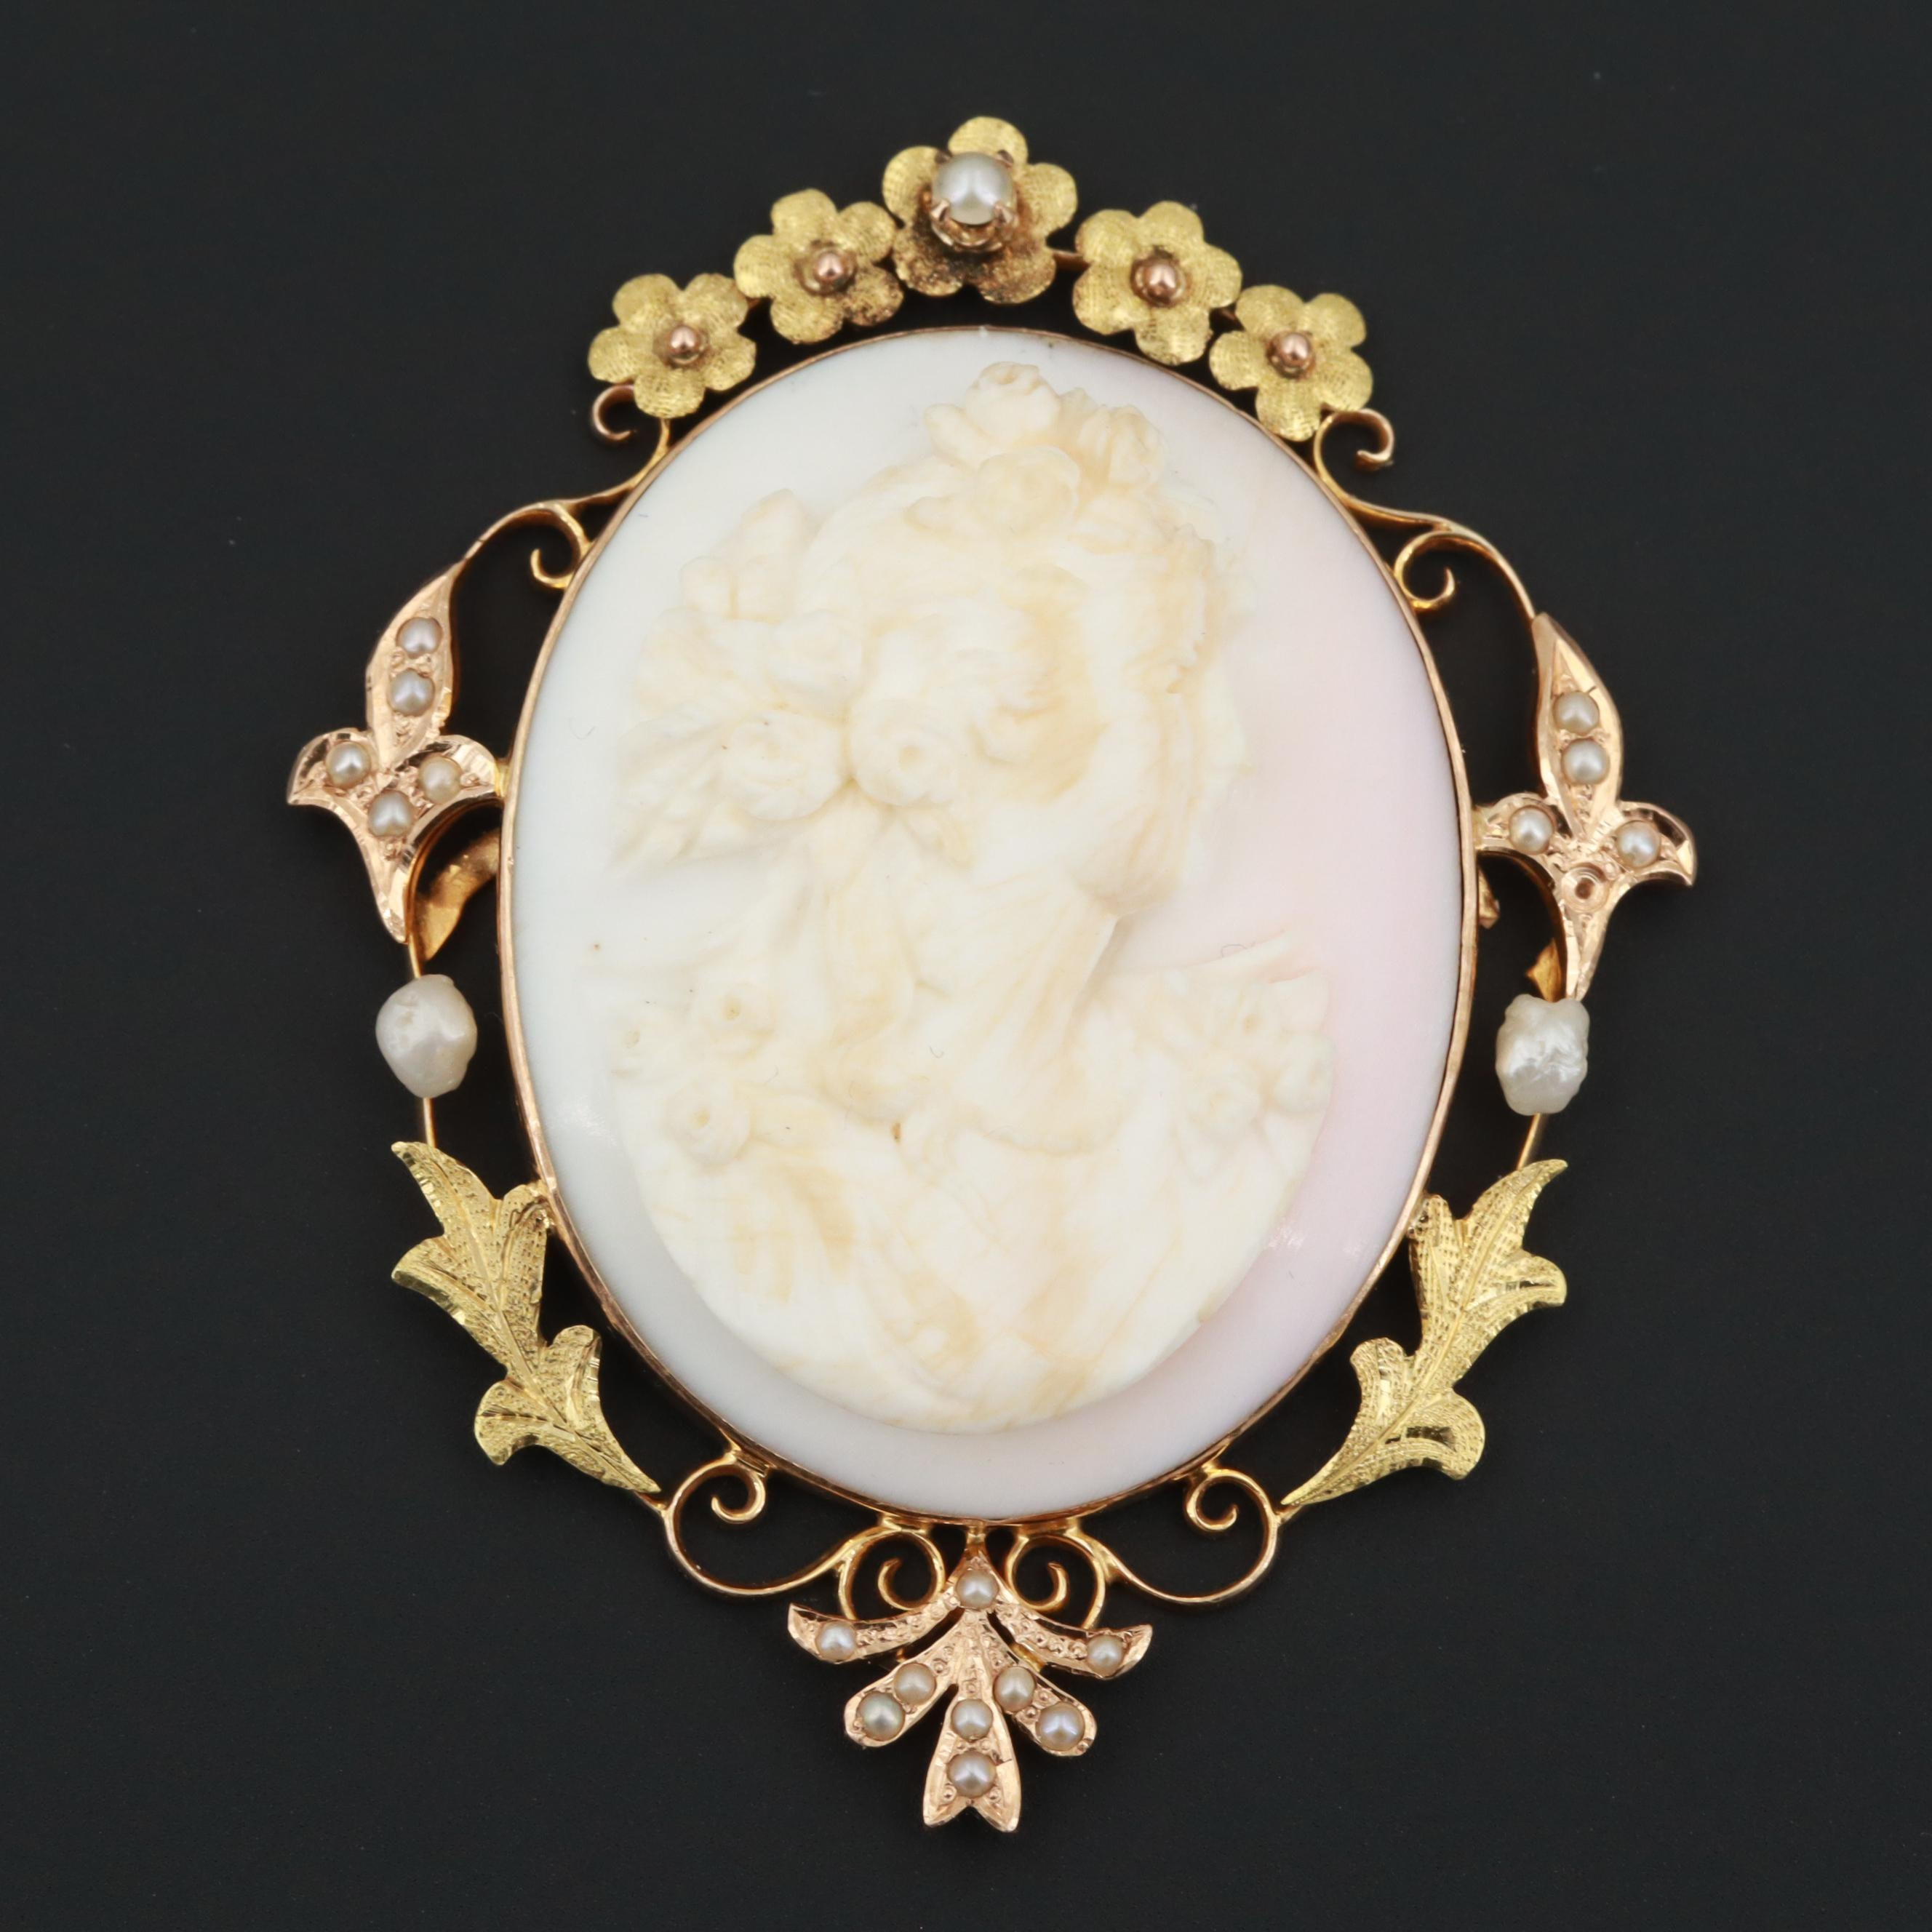 c. 1920s 10K Yellow Gold Conch Shell and Seed Pearl Converter Brooch